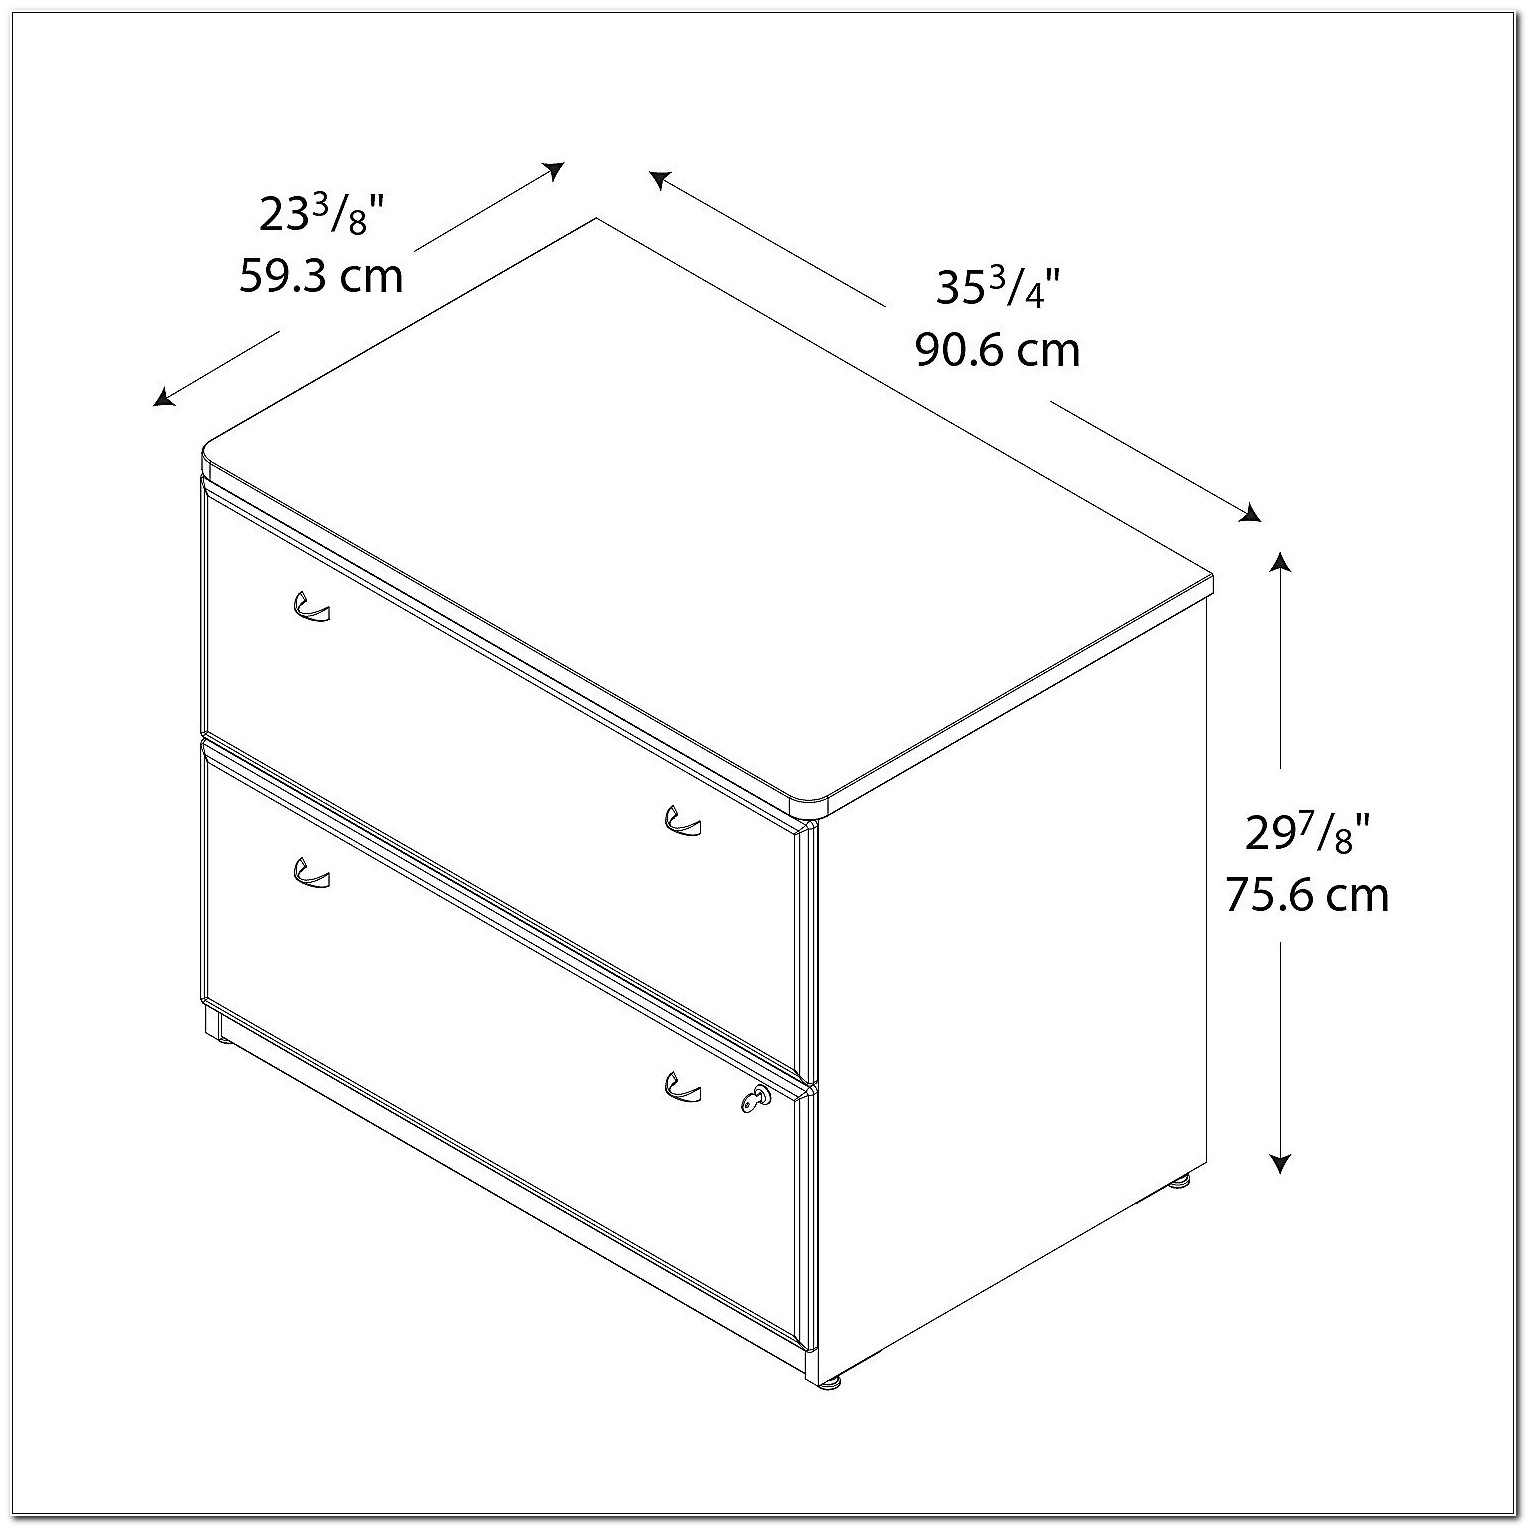 Standard Lateral File Cabinet Dimensions